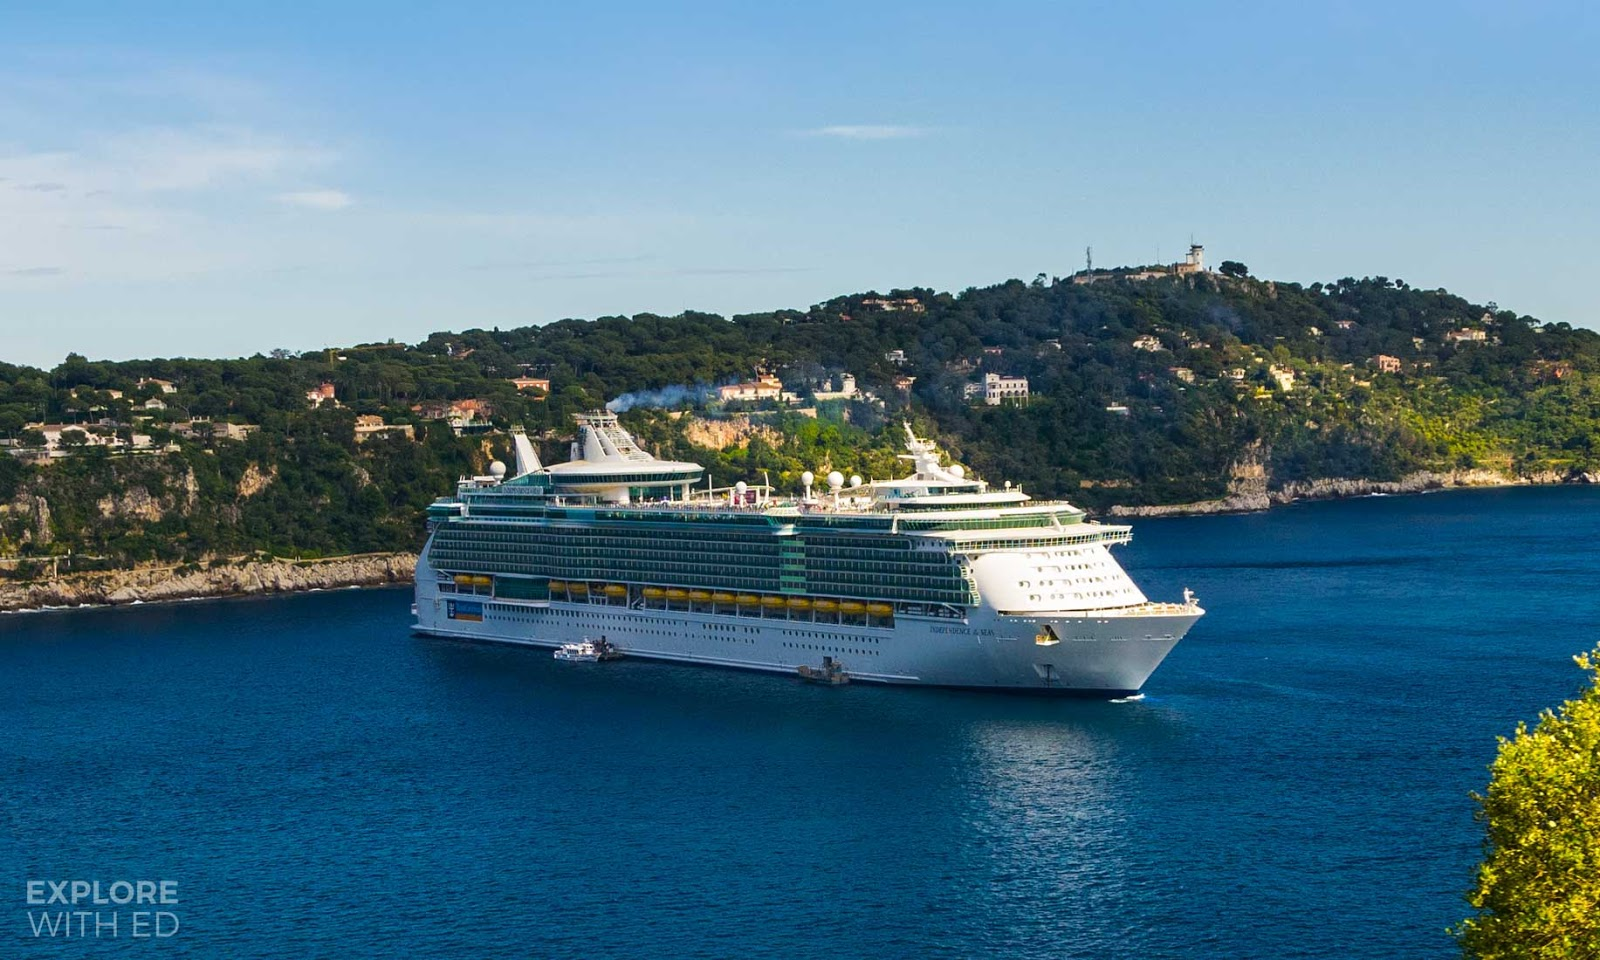 Independence of the Seas anchored off the coast of Villfrance-sur-Mer